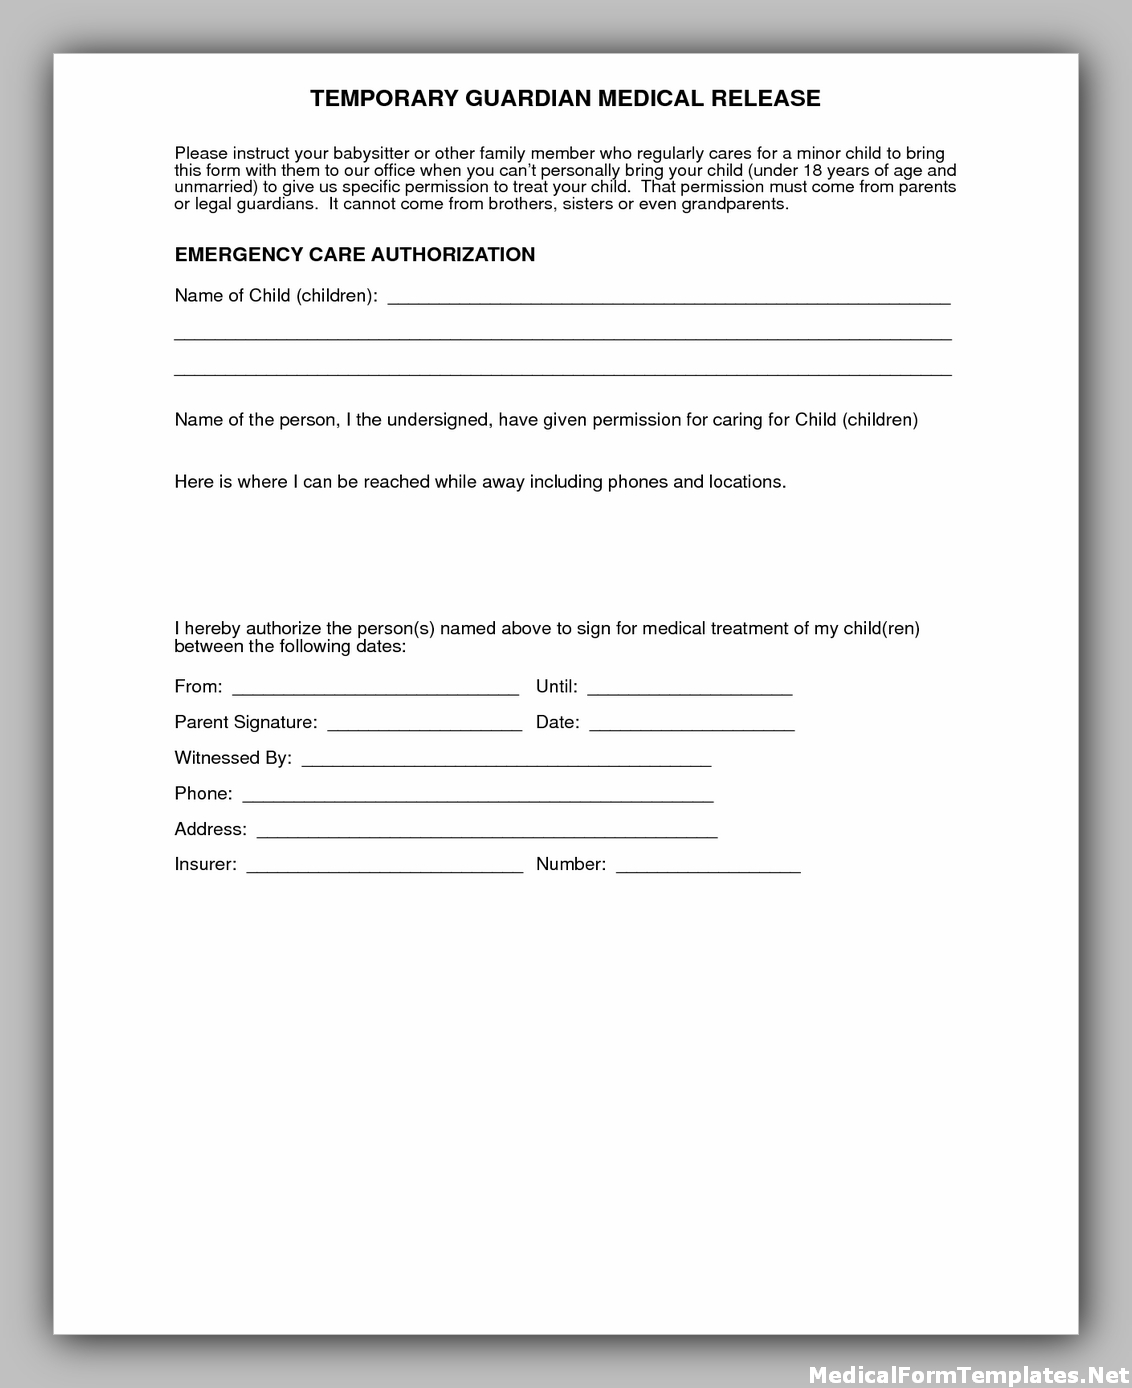 Temporary medical consent form for child